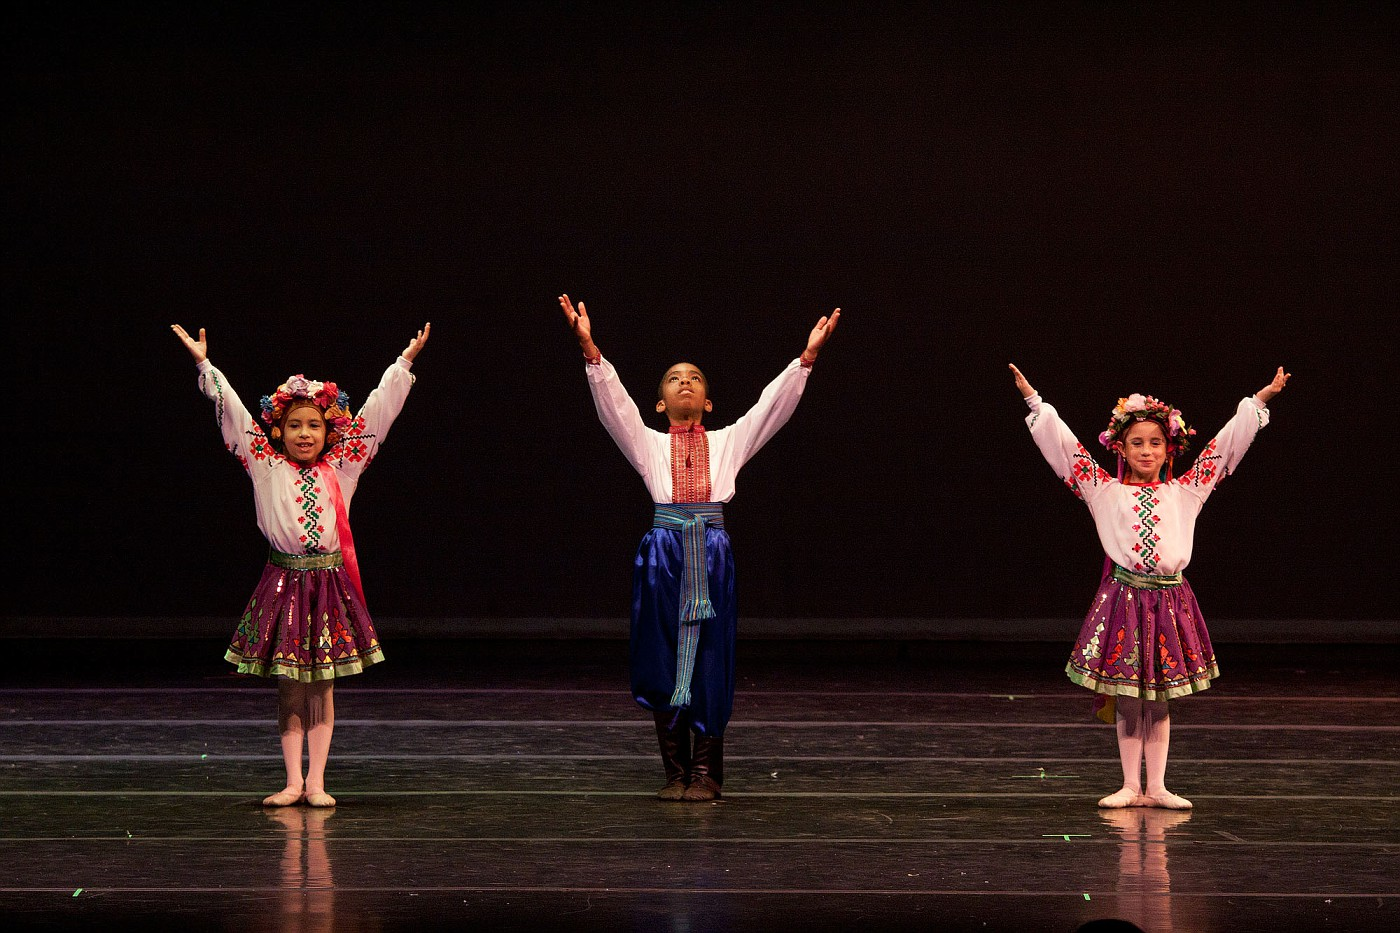 portrait-photography-children-ballet-20100617_0052.jpg